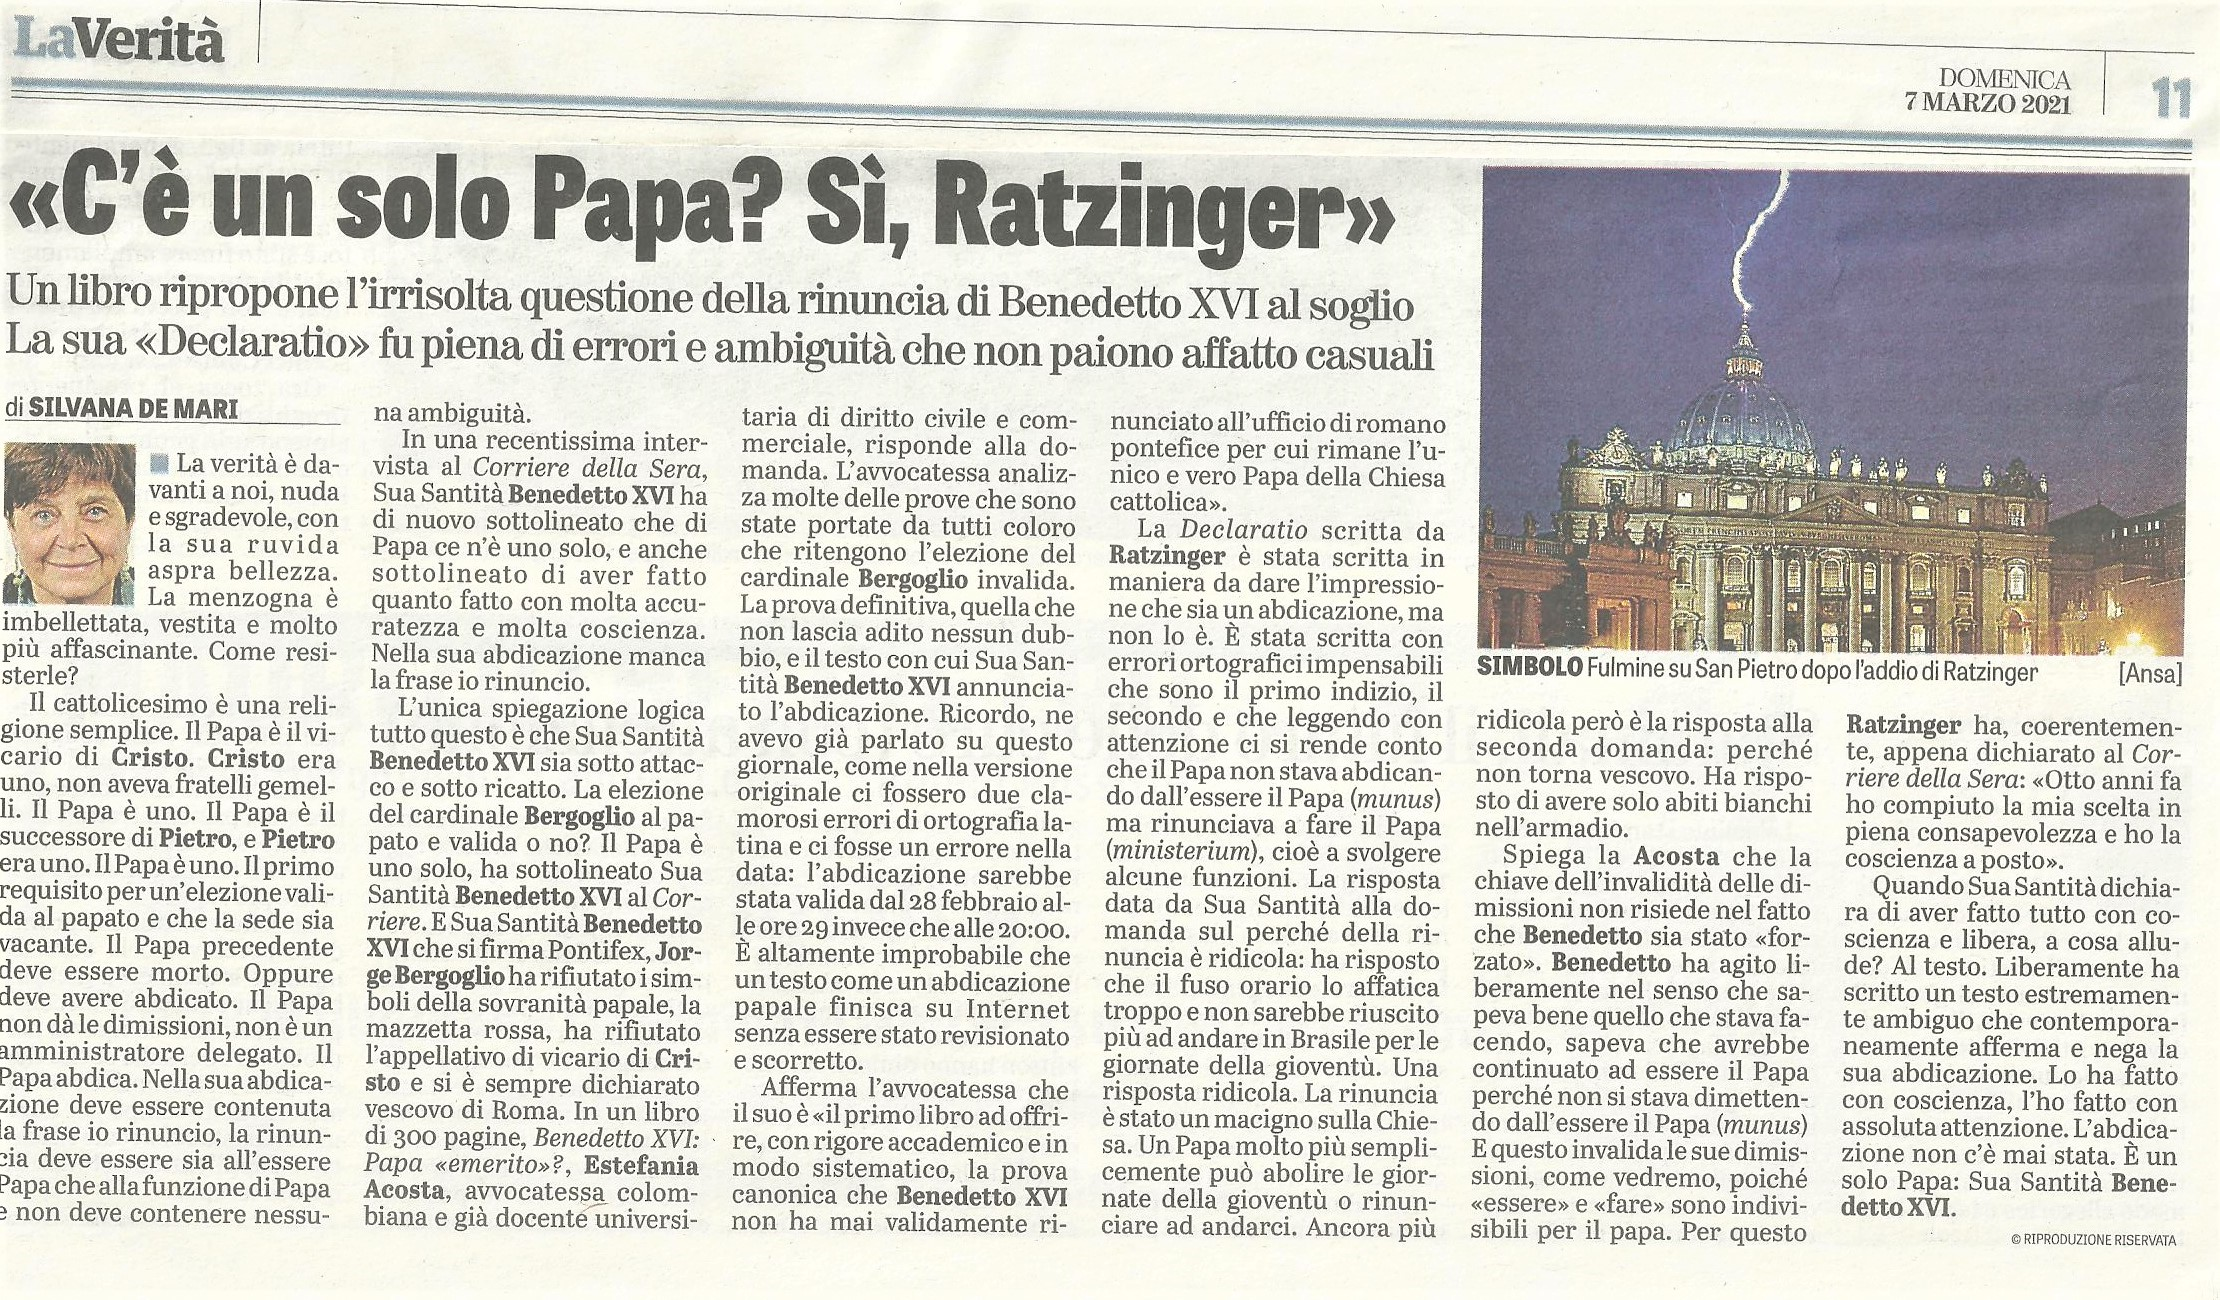 De Mari: There is only one Pope? Yes, Ratzinger!